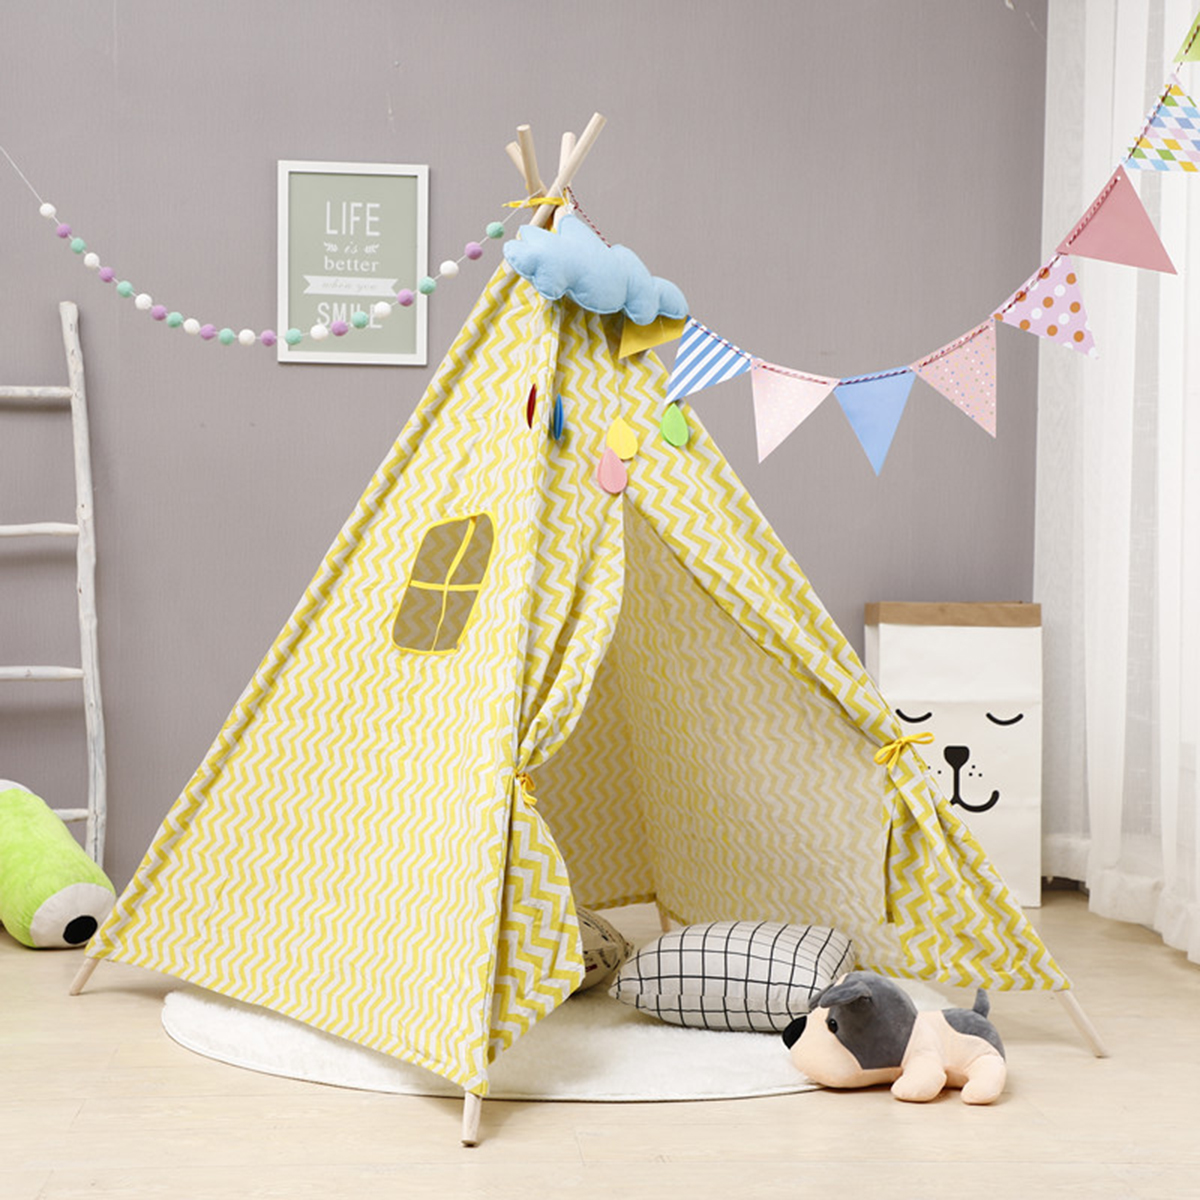 Large Teepee Tent Kids Cotton Canvas Pretend Play House Boys Girls Wigwam Gifts